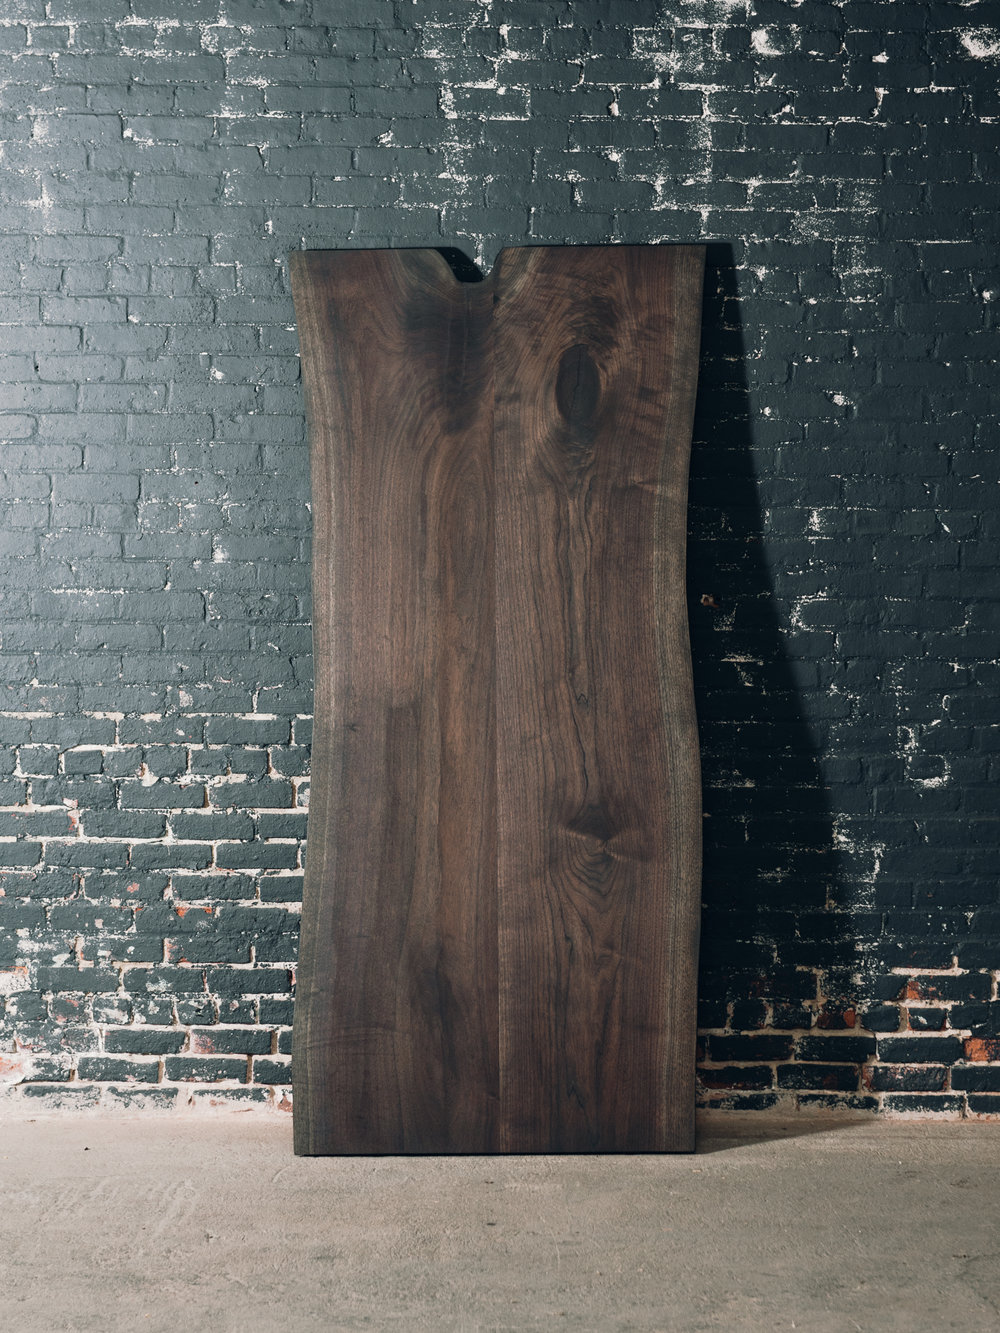 7' x 3' Charcoal Walnut Slab Table (Sold)